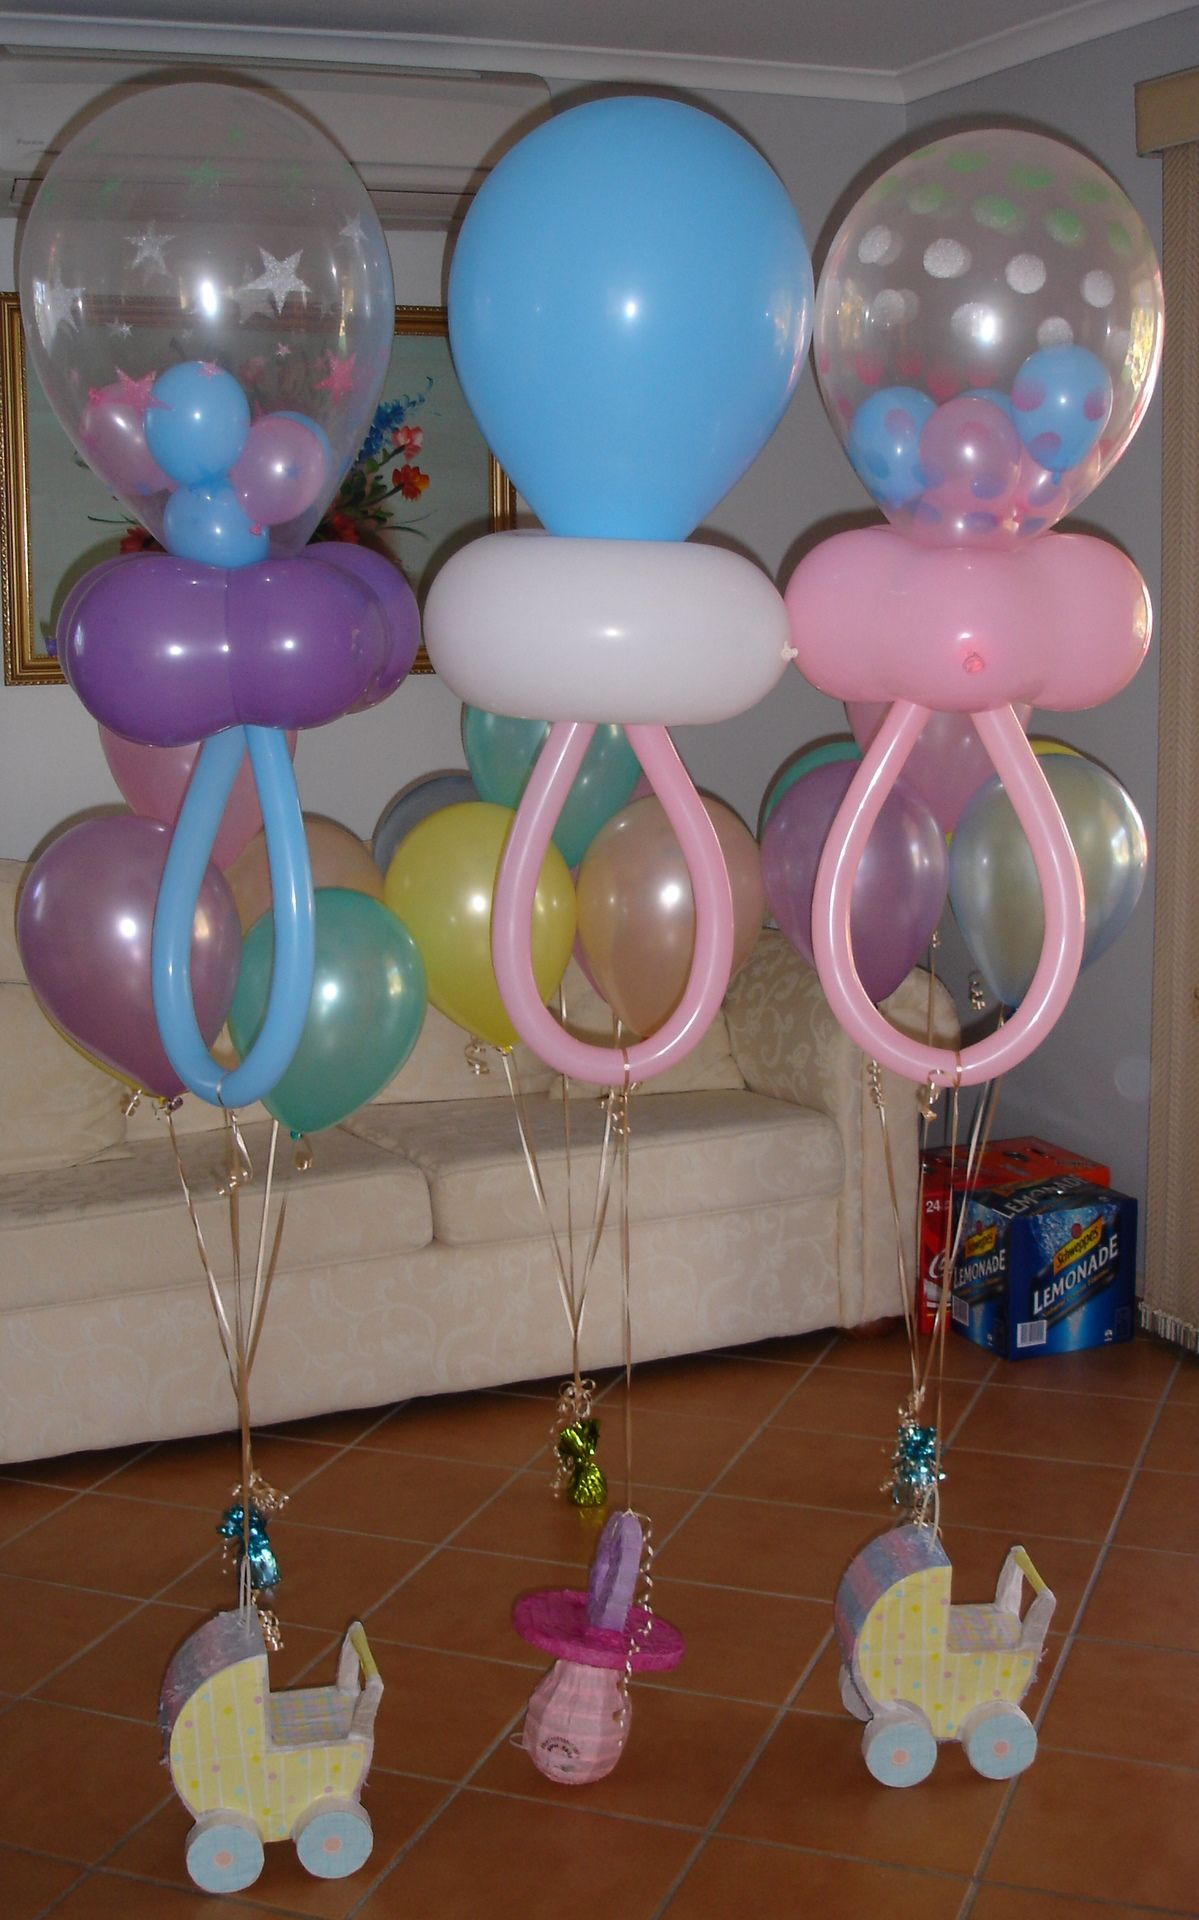 Party Hire Ryde Amazing Party Hire Photo Gallery Baby Shower Balloons Baby Boy Shower Balloons